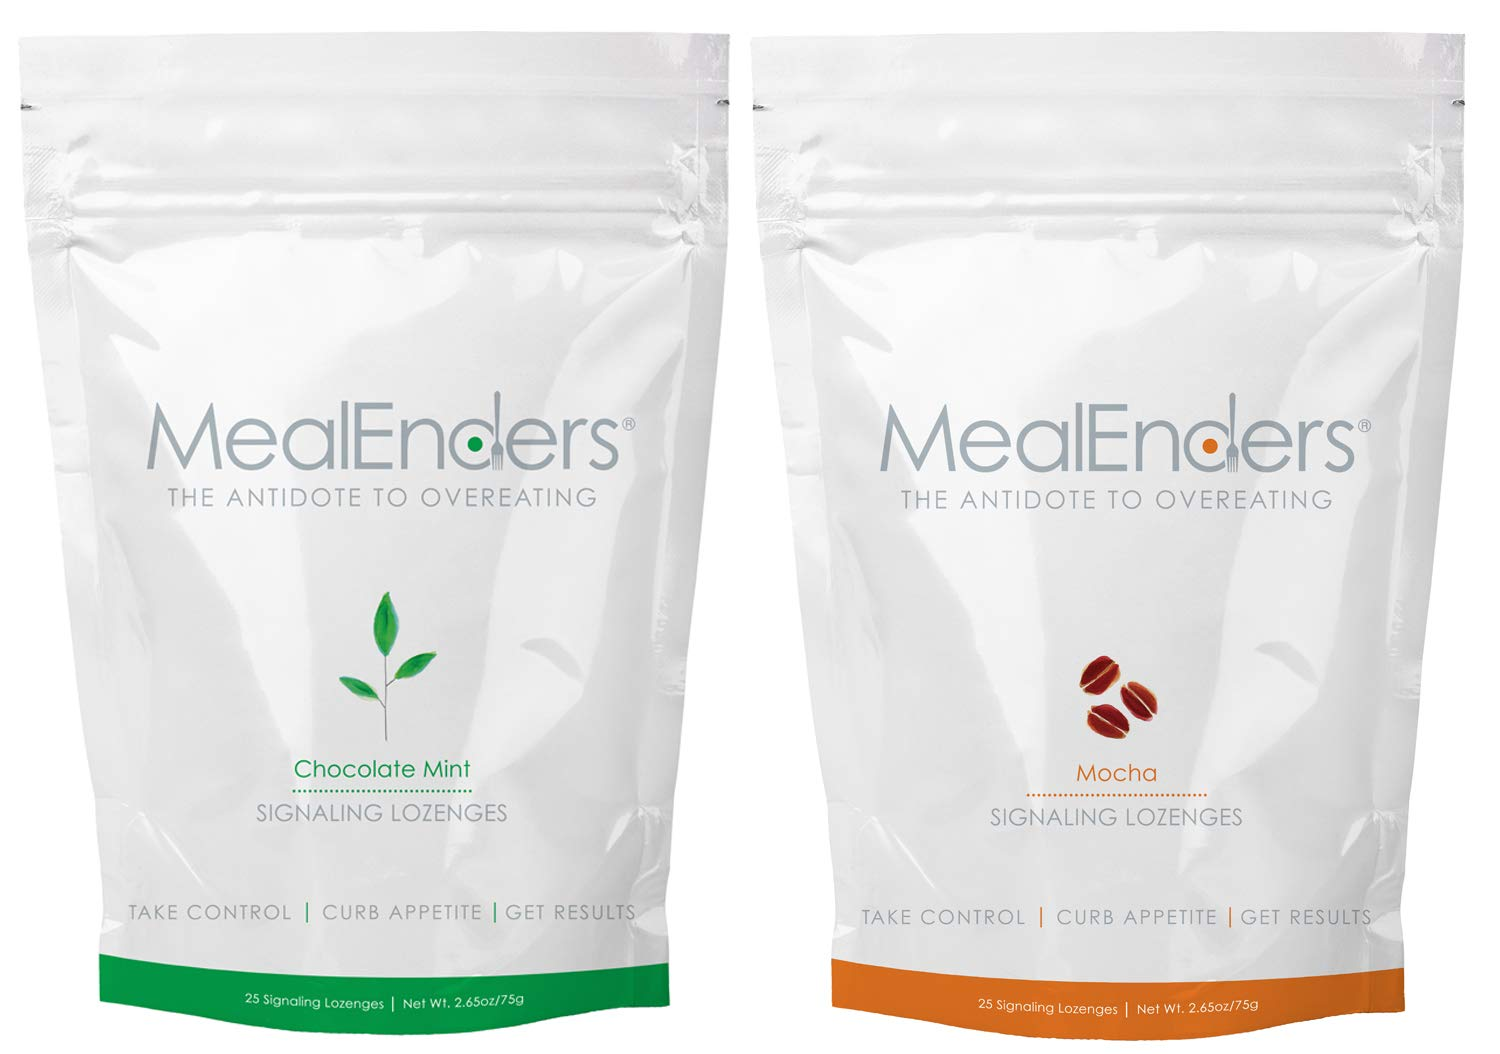 MealEnders Cravings Control Lozenges | Stop Overeating, Curb Cravings and Reduce Snacking | 25-Count Bag (2-Pack) (1x Choc.Mint 1x Mocha) by MealEnders